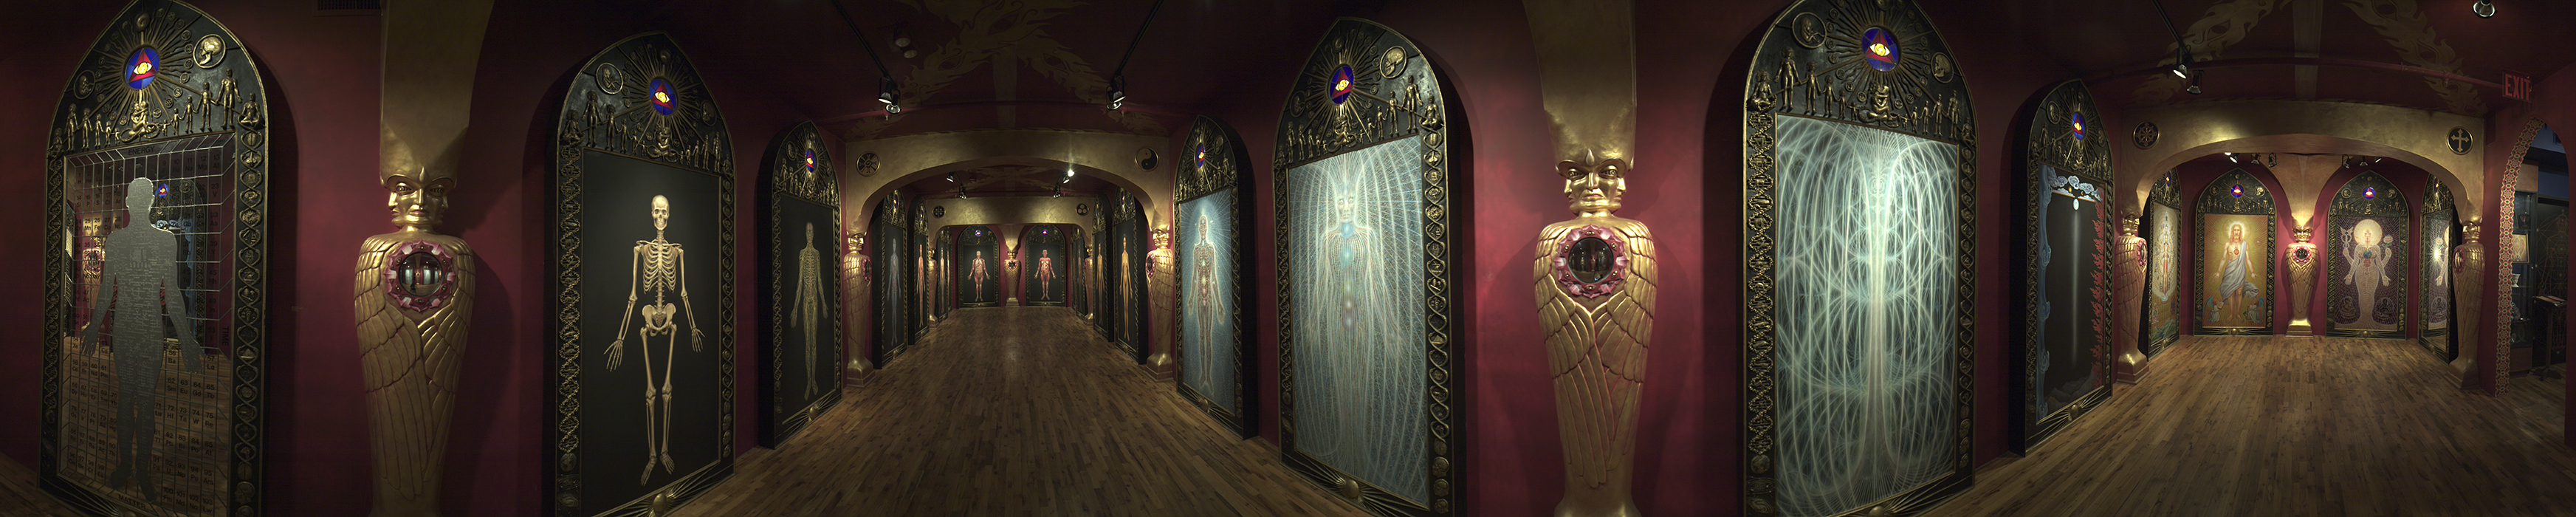 Sacred Mirrors - 360 Degree View